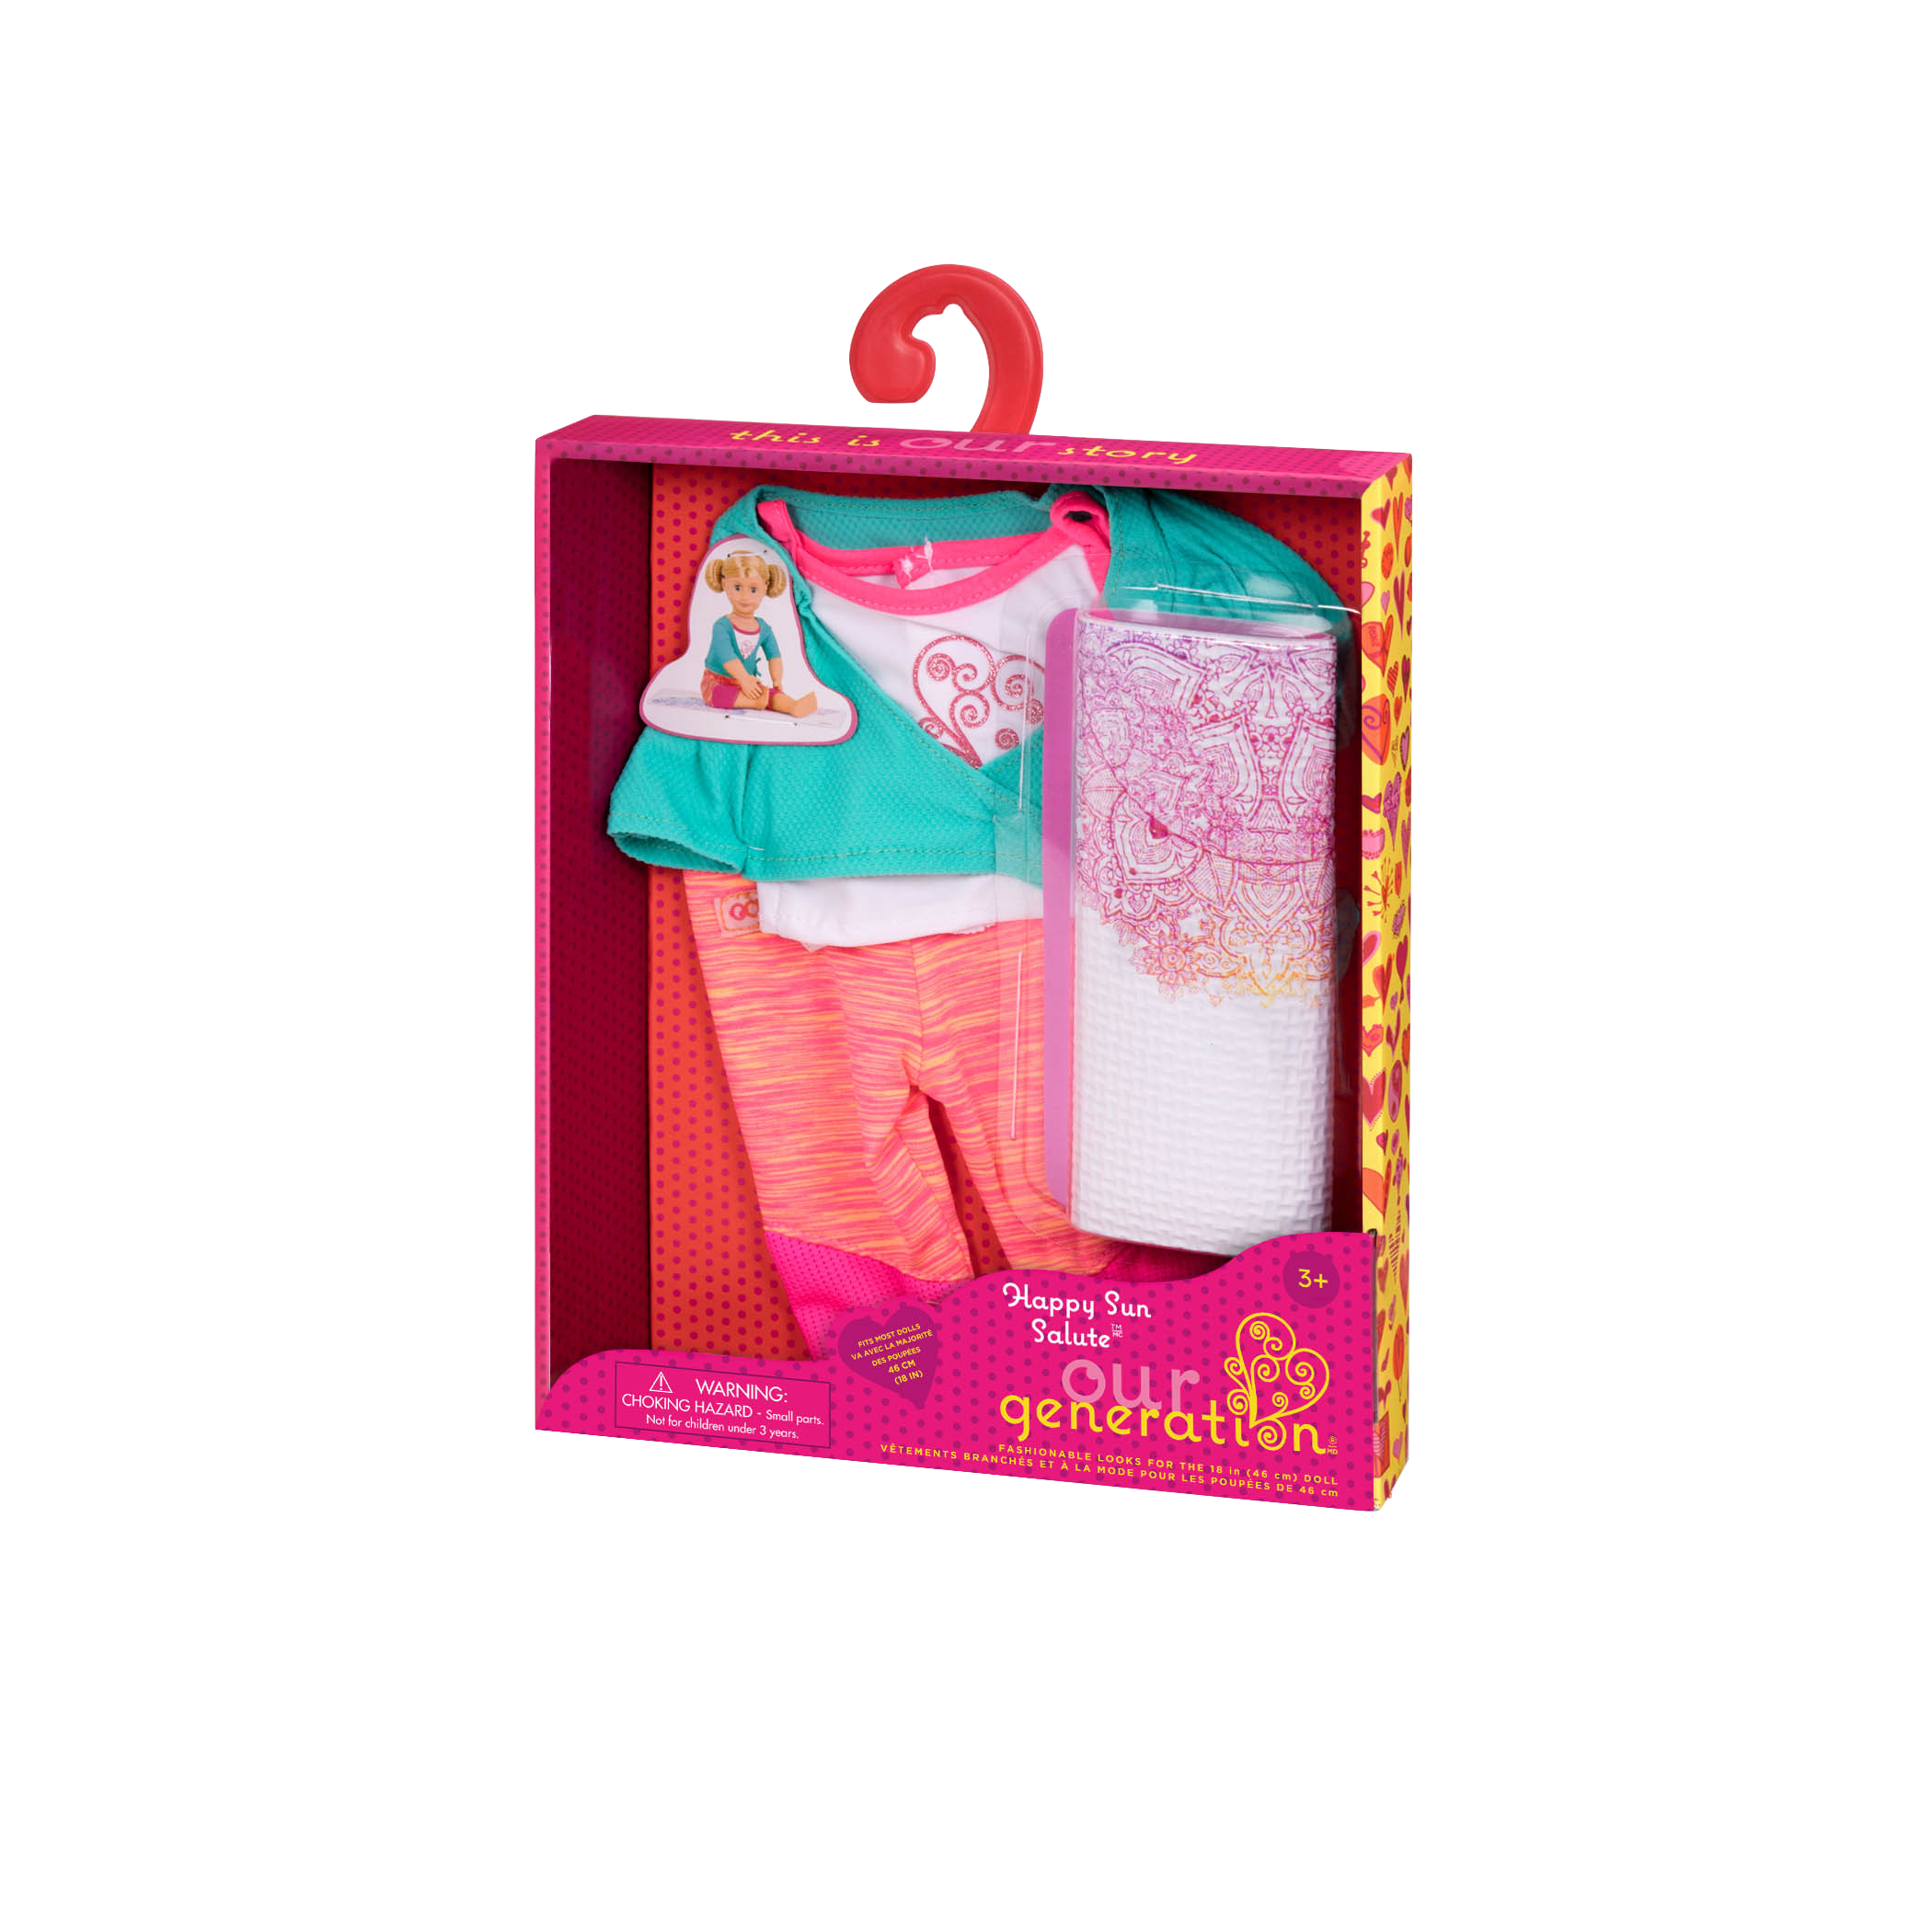 Happy Sun Salute yoga Outfit package